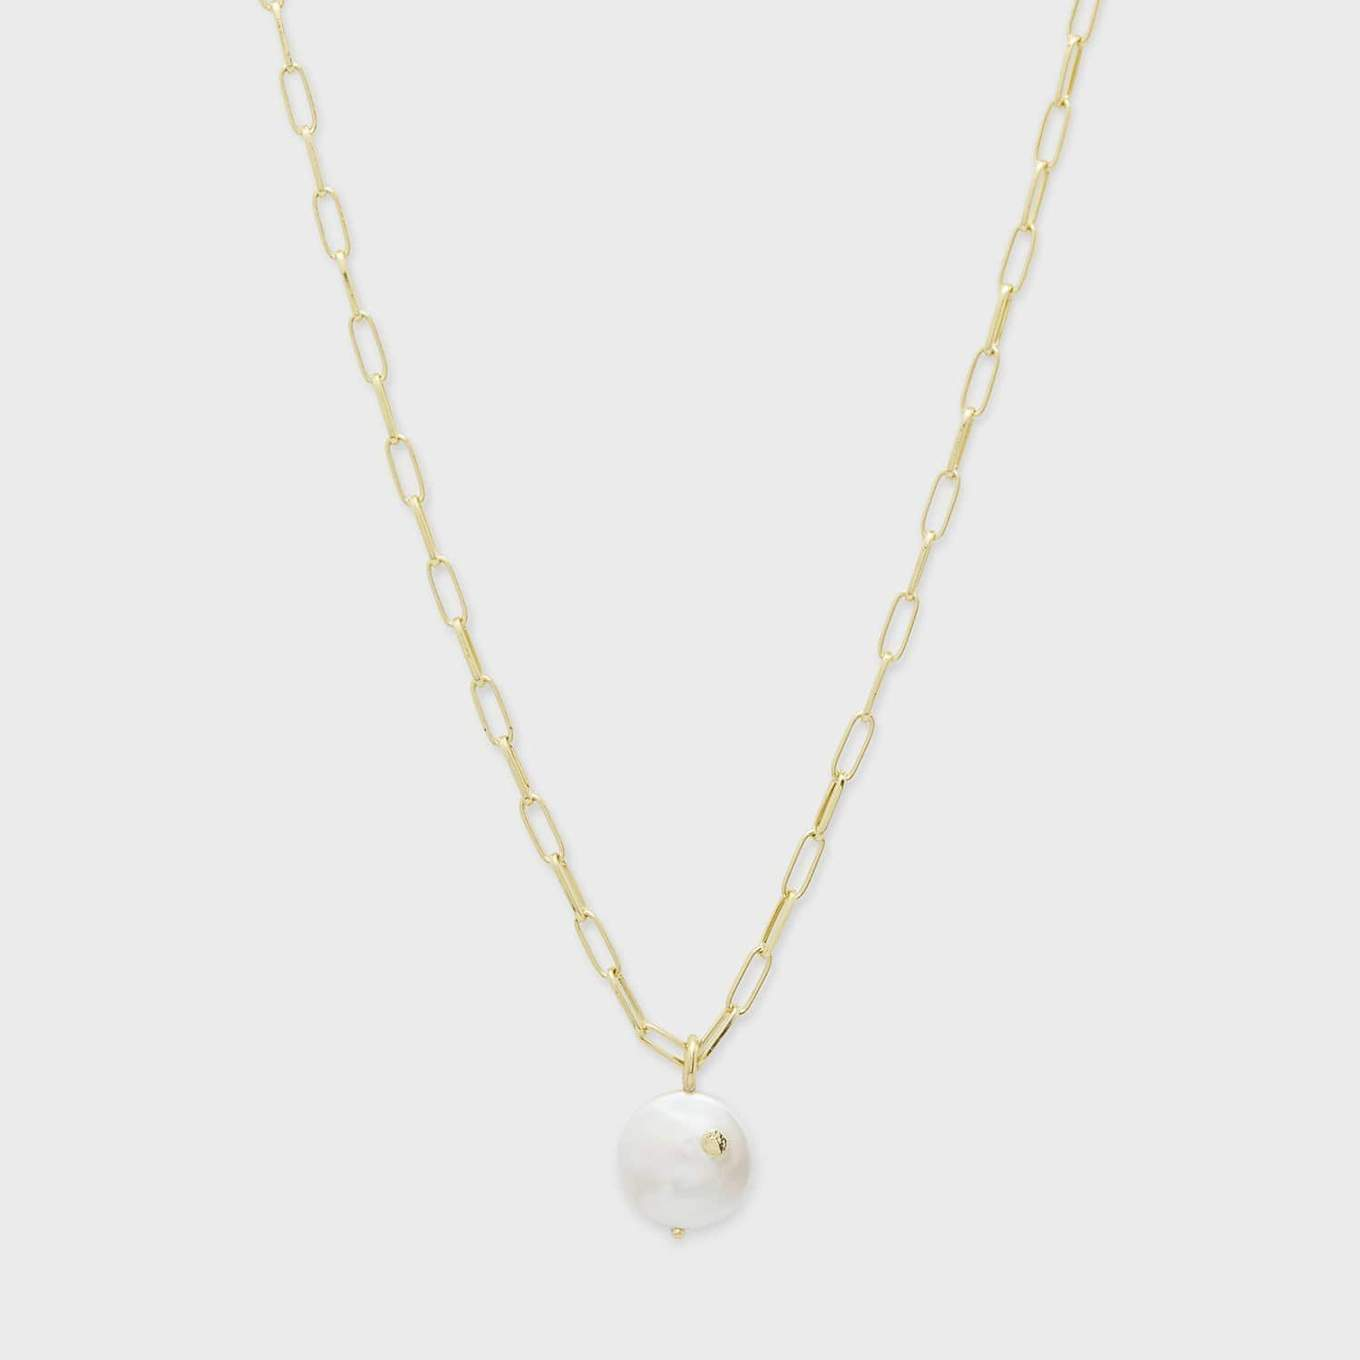 Gorjana Reese Pearl Necklace